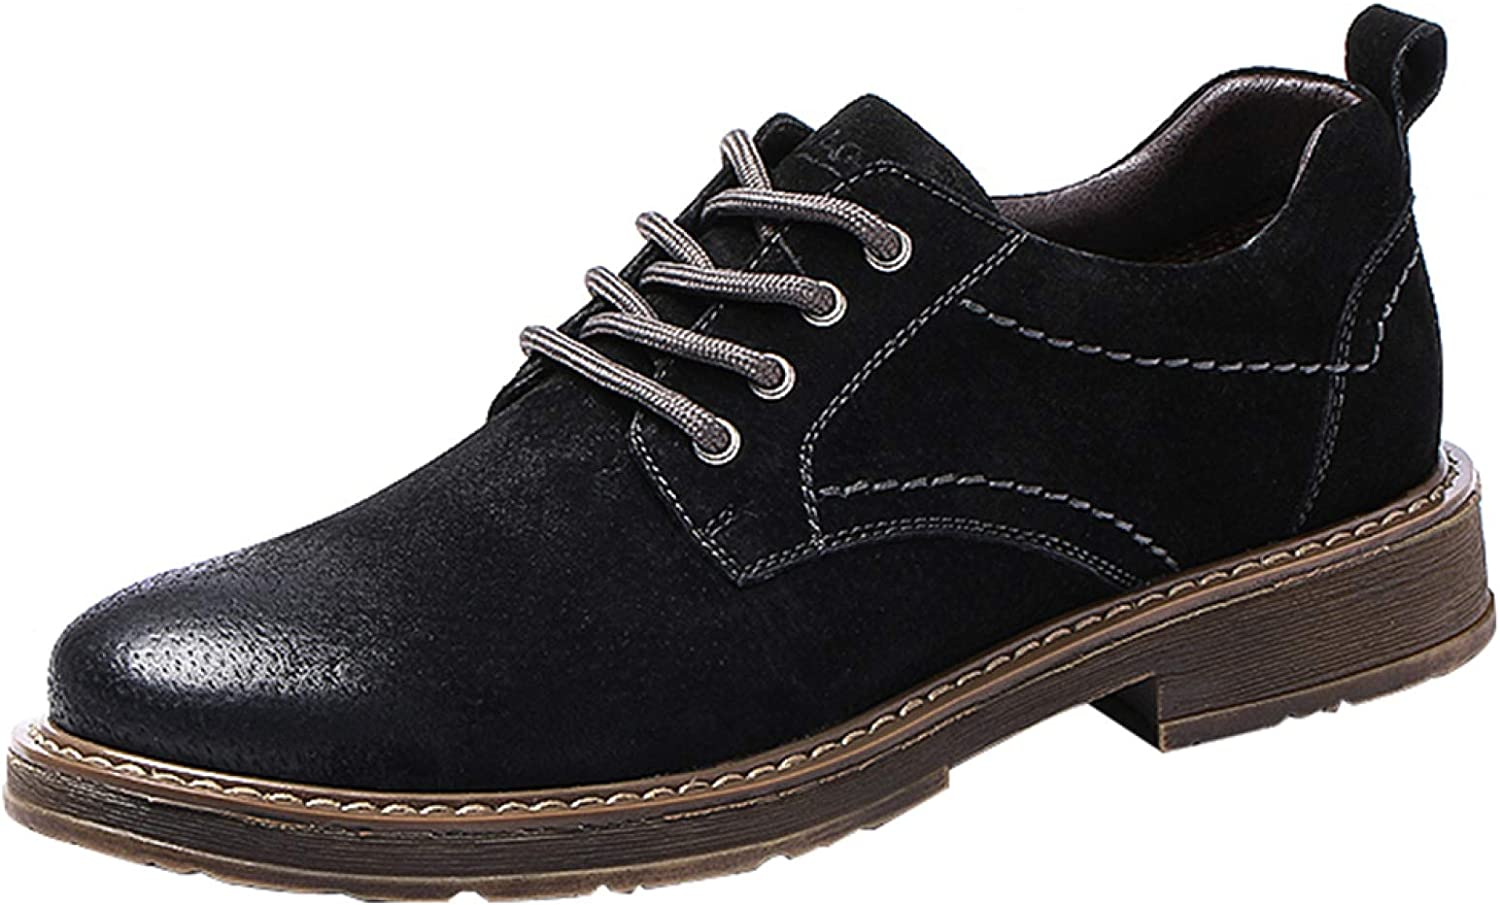 Men's Fashion Casual shoes British Business shoes Comfortable And Versatile